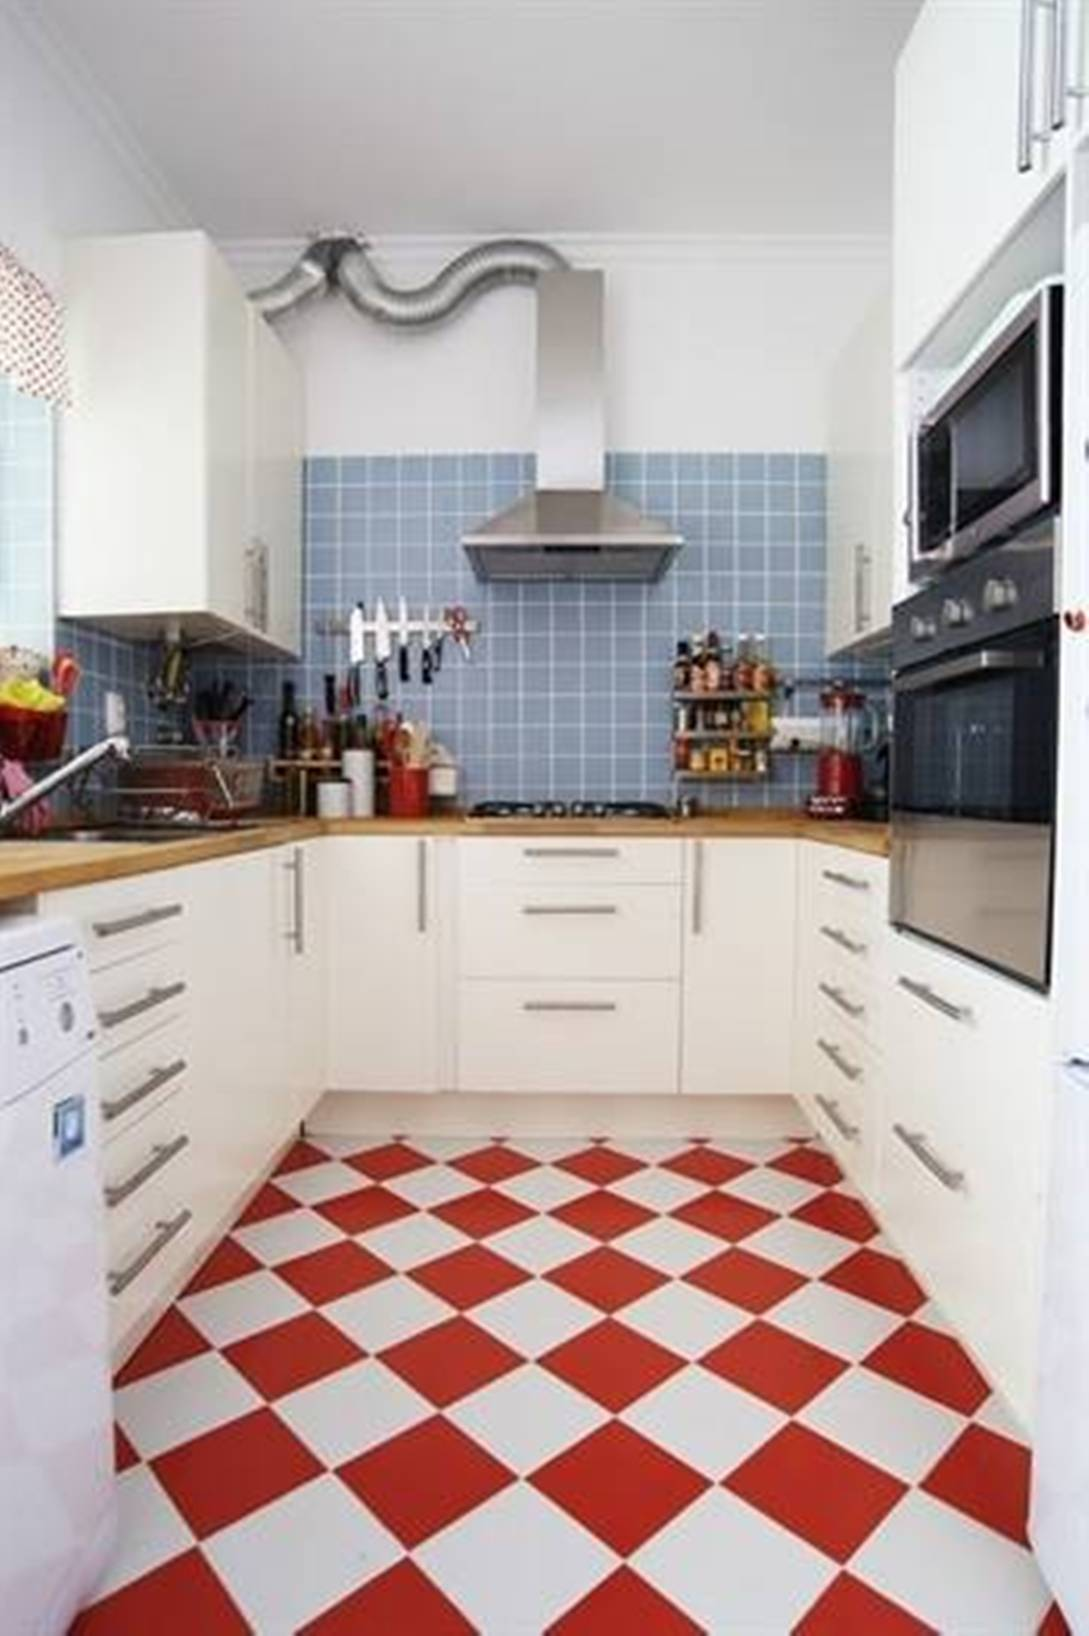 Fliesen Küchenboden Landhaus Red White Kitchen Floor Tiles Film And Furniture